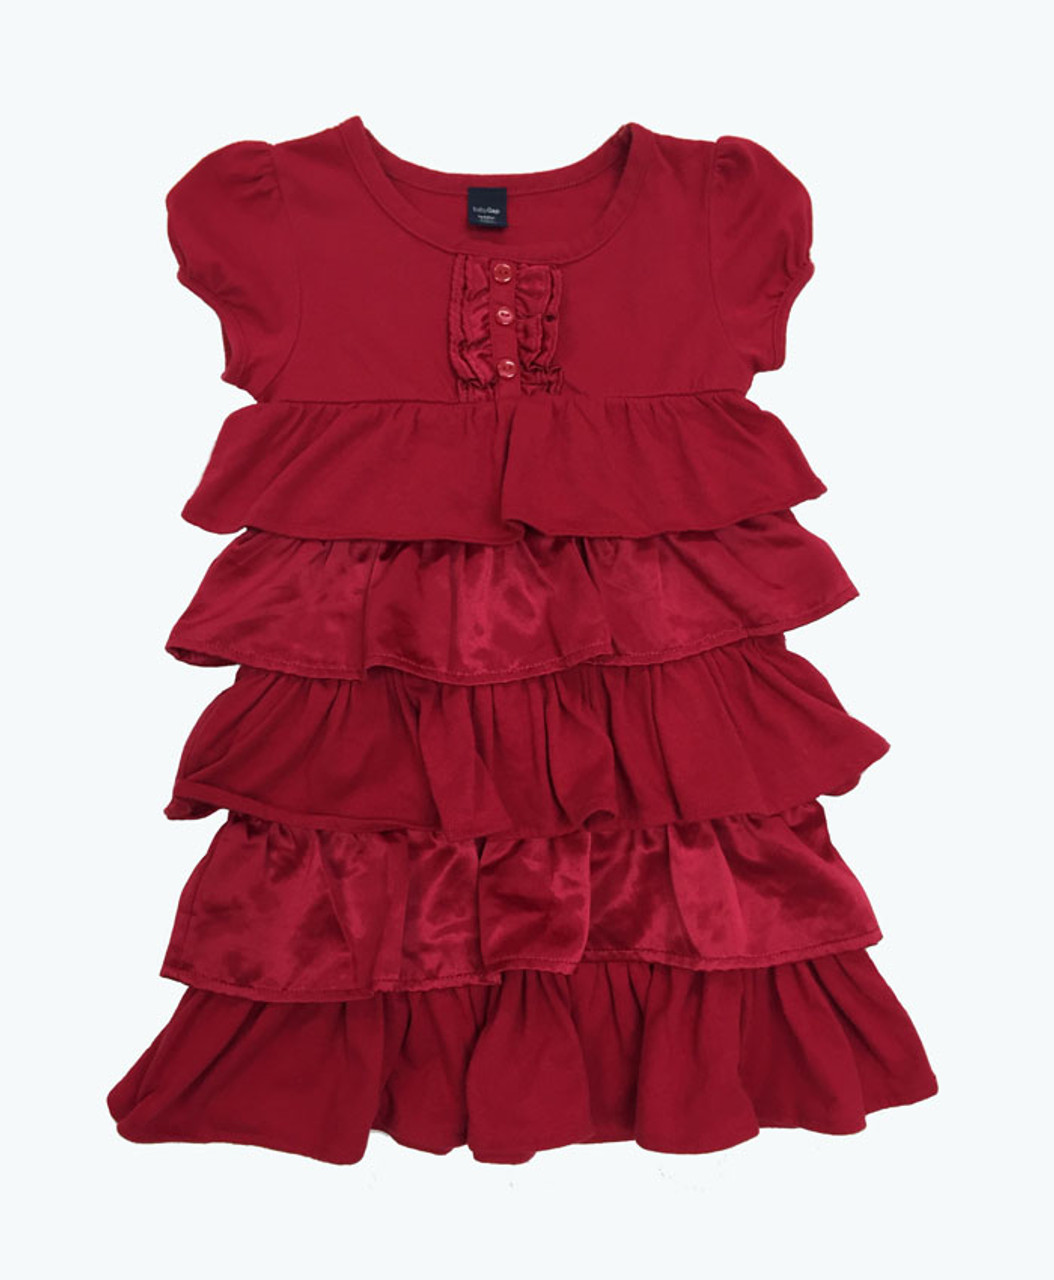 500531bd13fa Baby Gap Girls Holiday Dresses | Berri Kids Resale Boutique